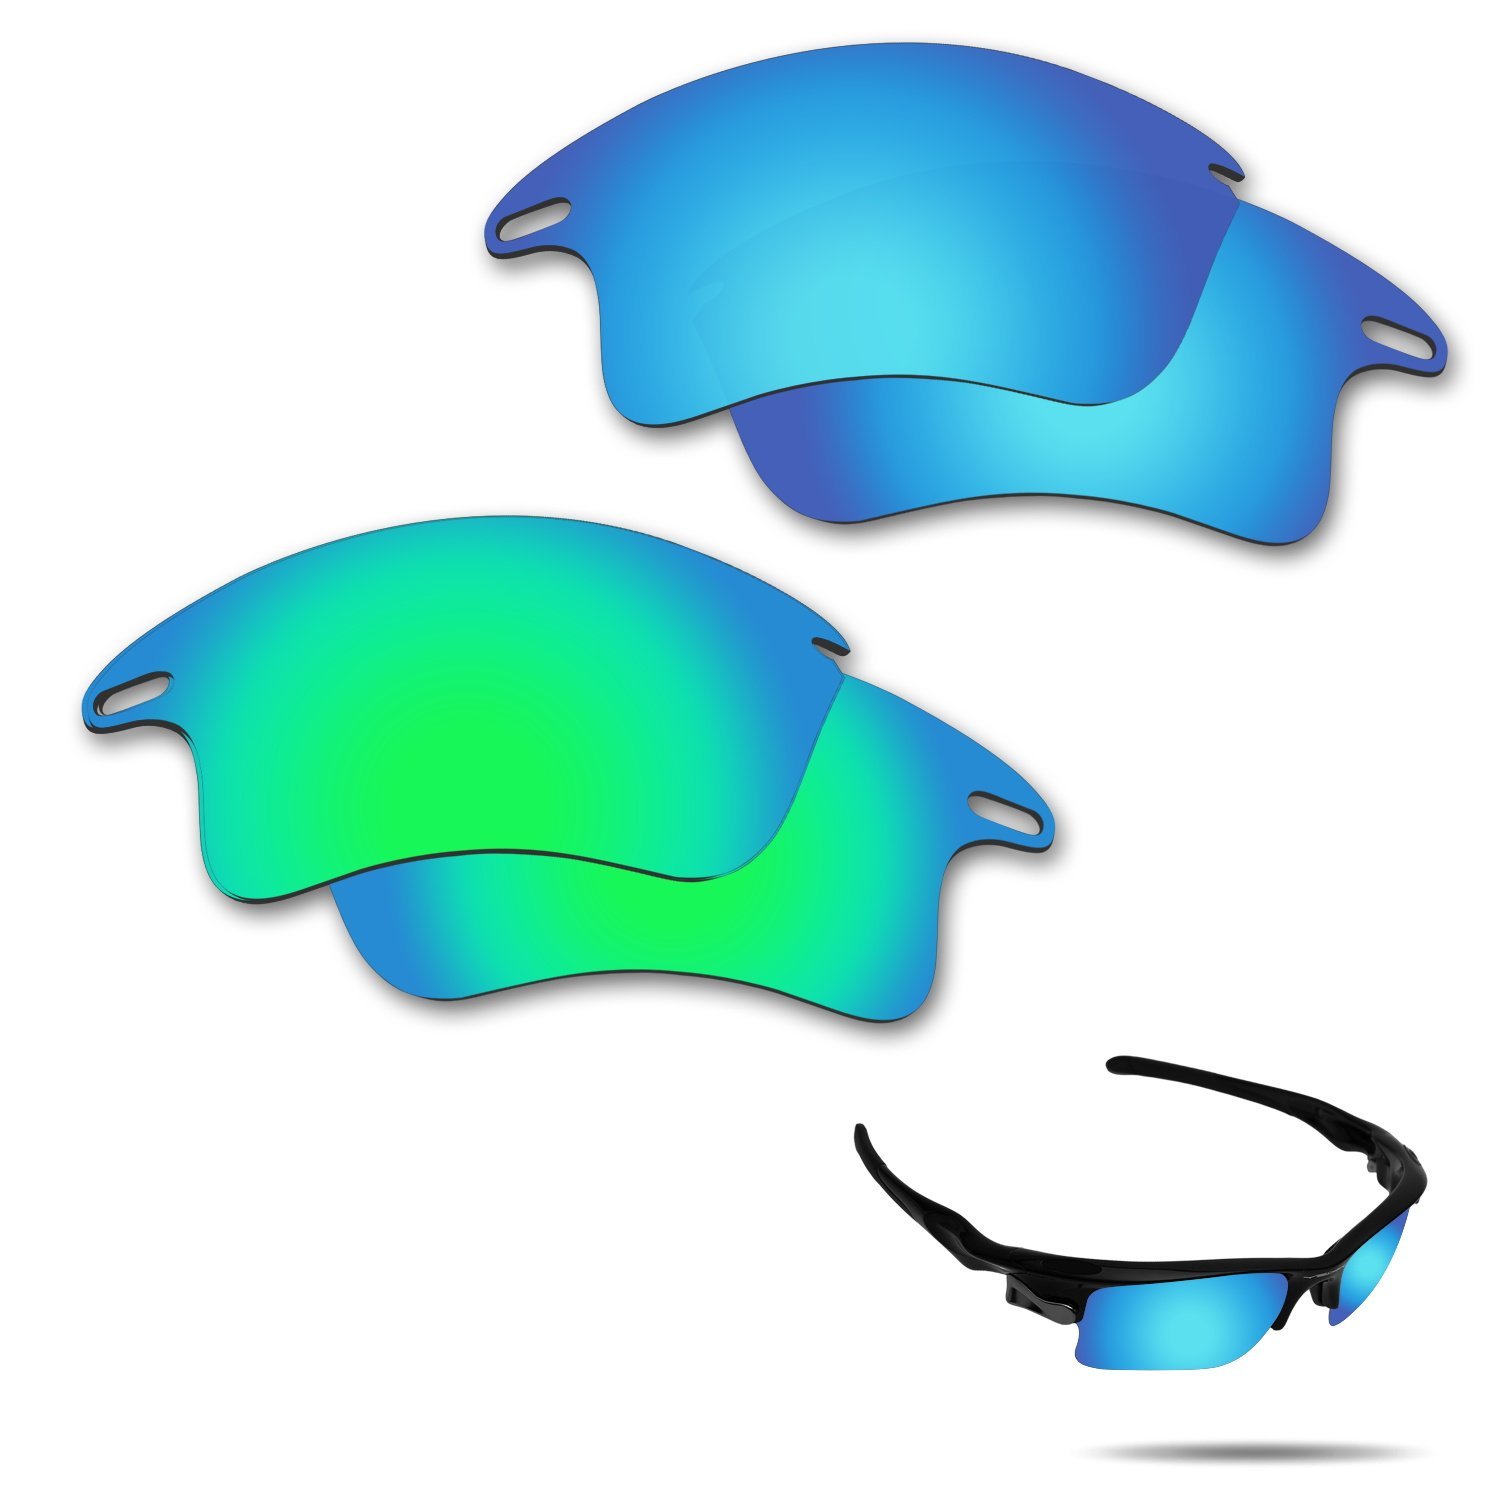 Fiskr Anti-Saltwater Polarized Replacement Lenses for Oakley Fast Jacket XL Sunglasses 2 Pairs Packed (Ice Blue & Emerald Green)